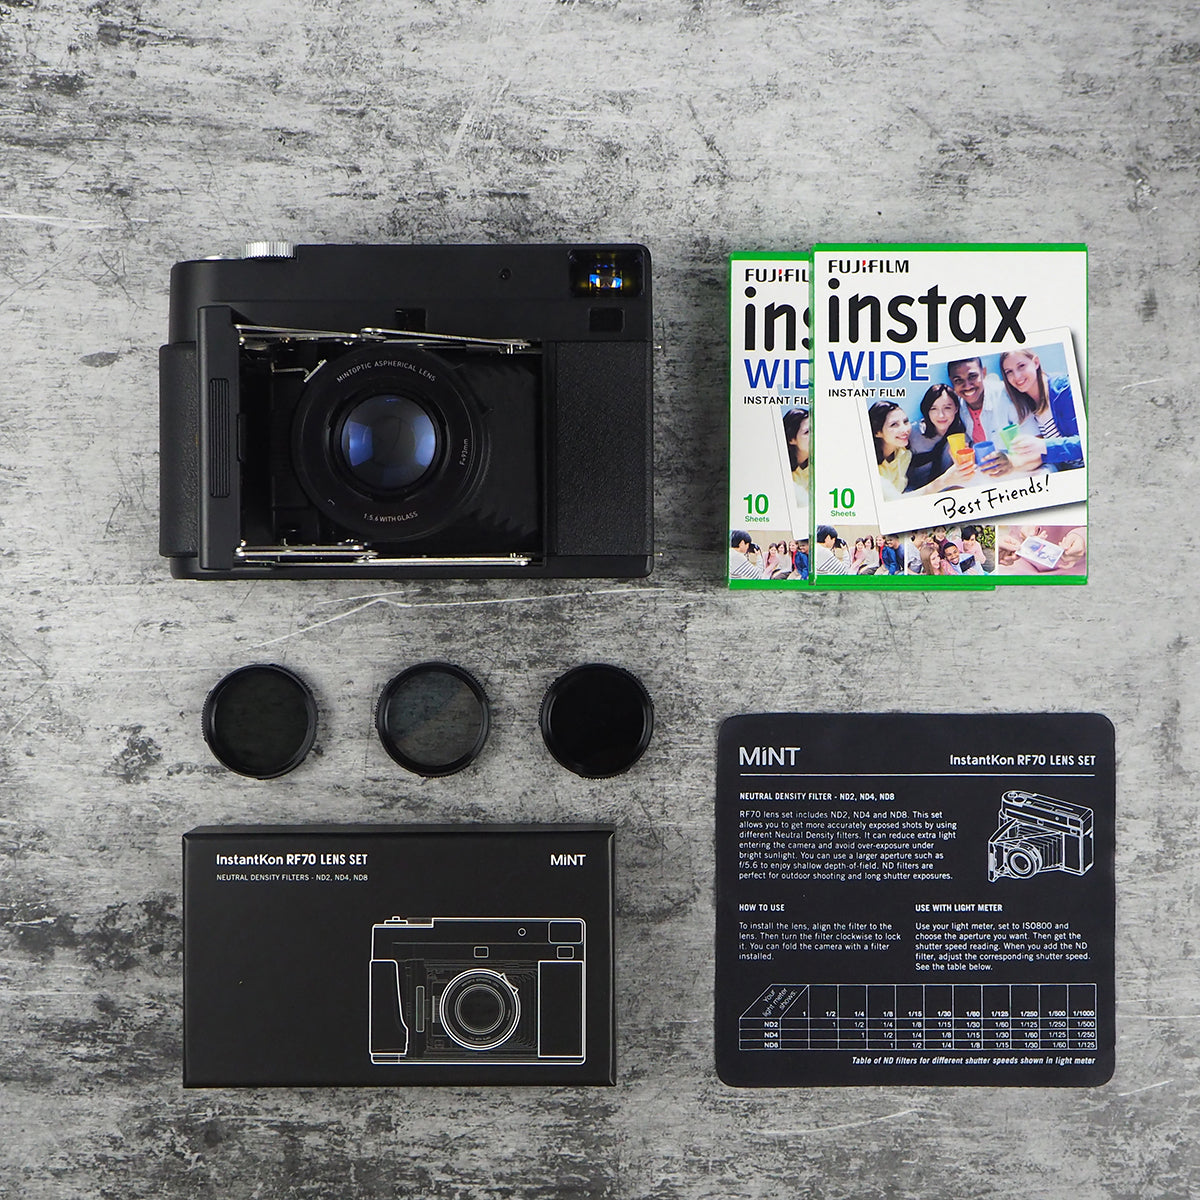 MiNT Instantkon RF70 - Starter Package[product_tag] Singapore - 8storeytree